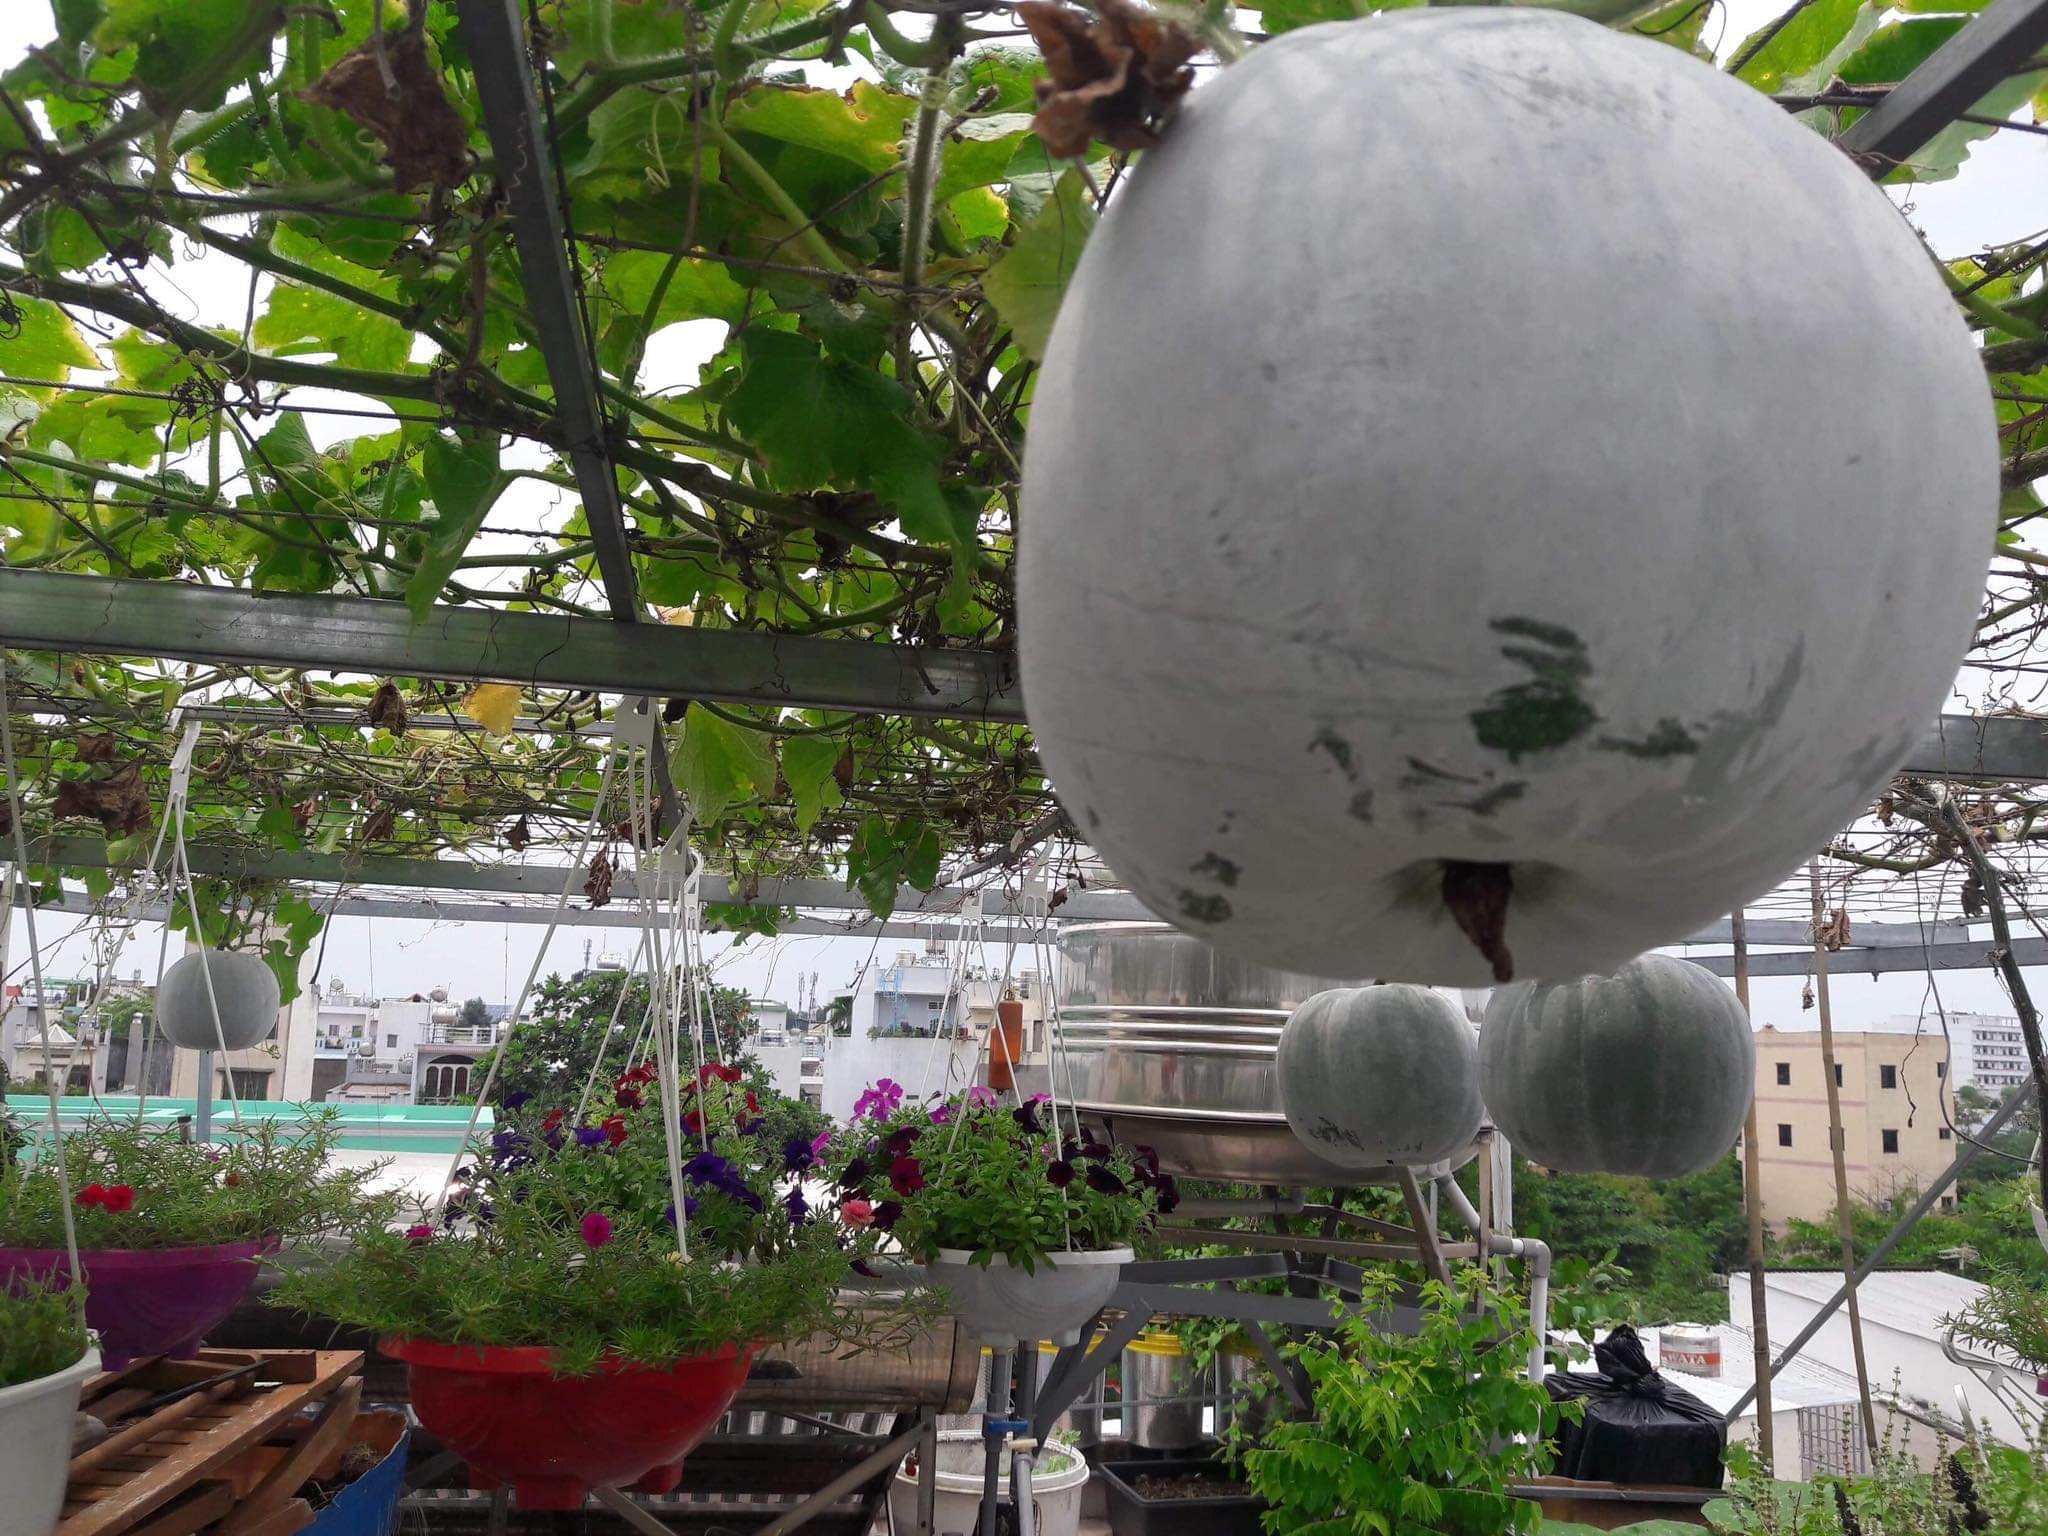 Squash hanging on the vine in Thuong's rooftop garden